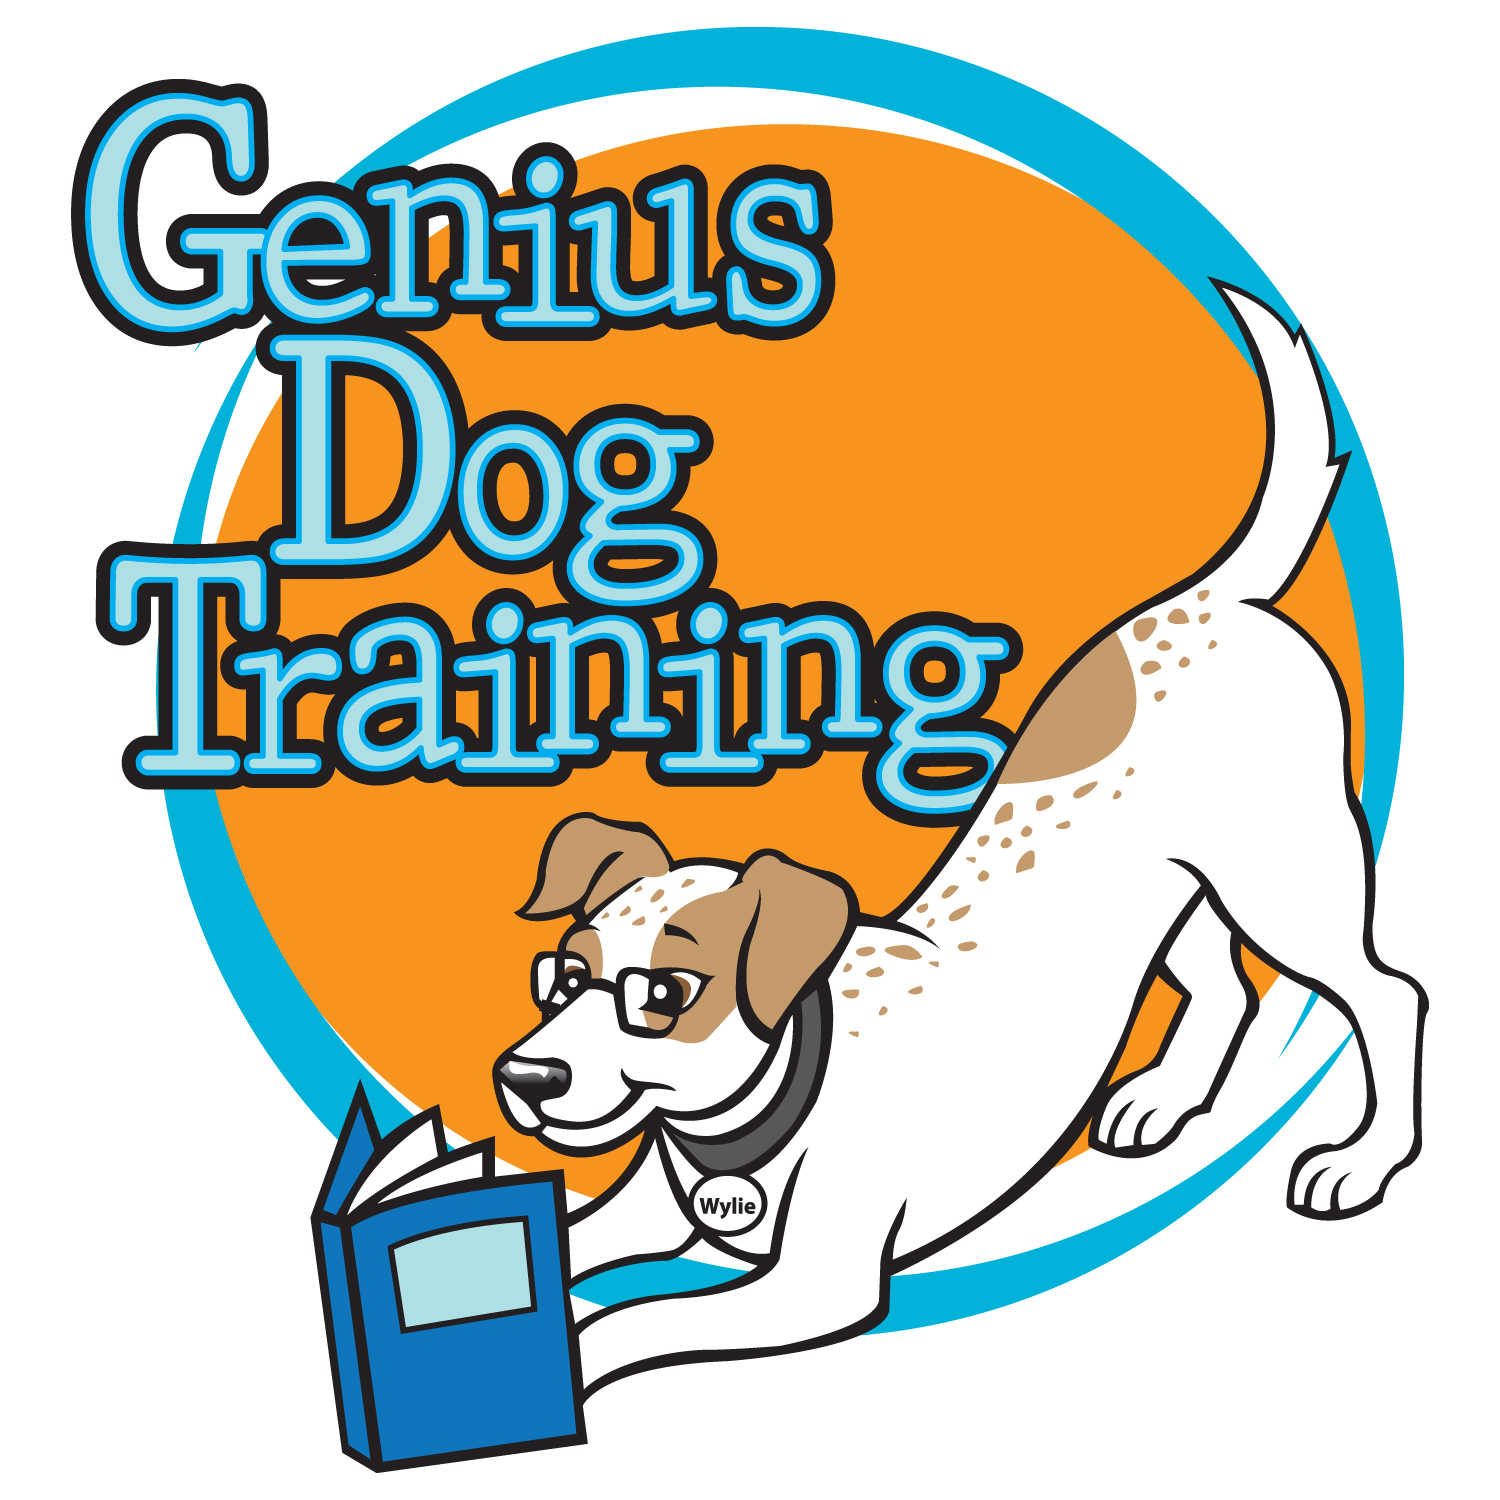 Genius Dog Training Logo